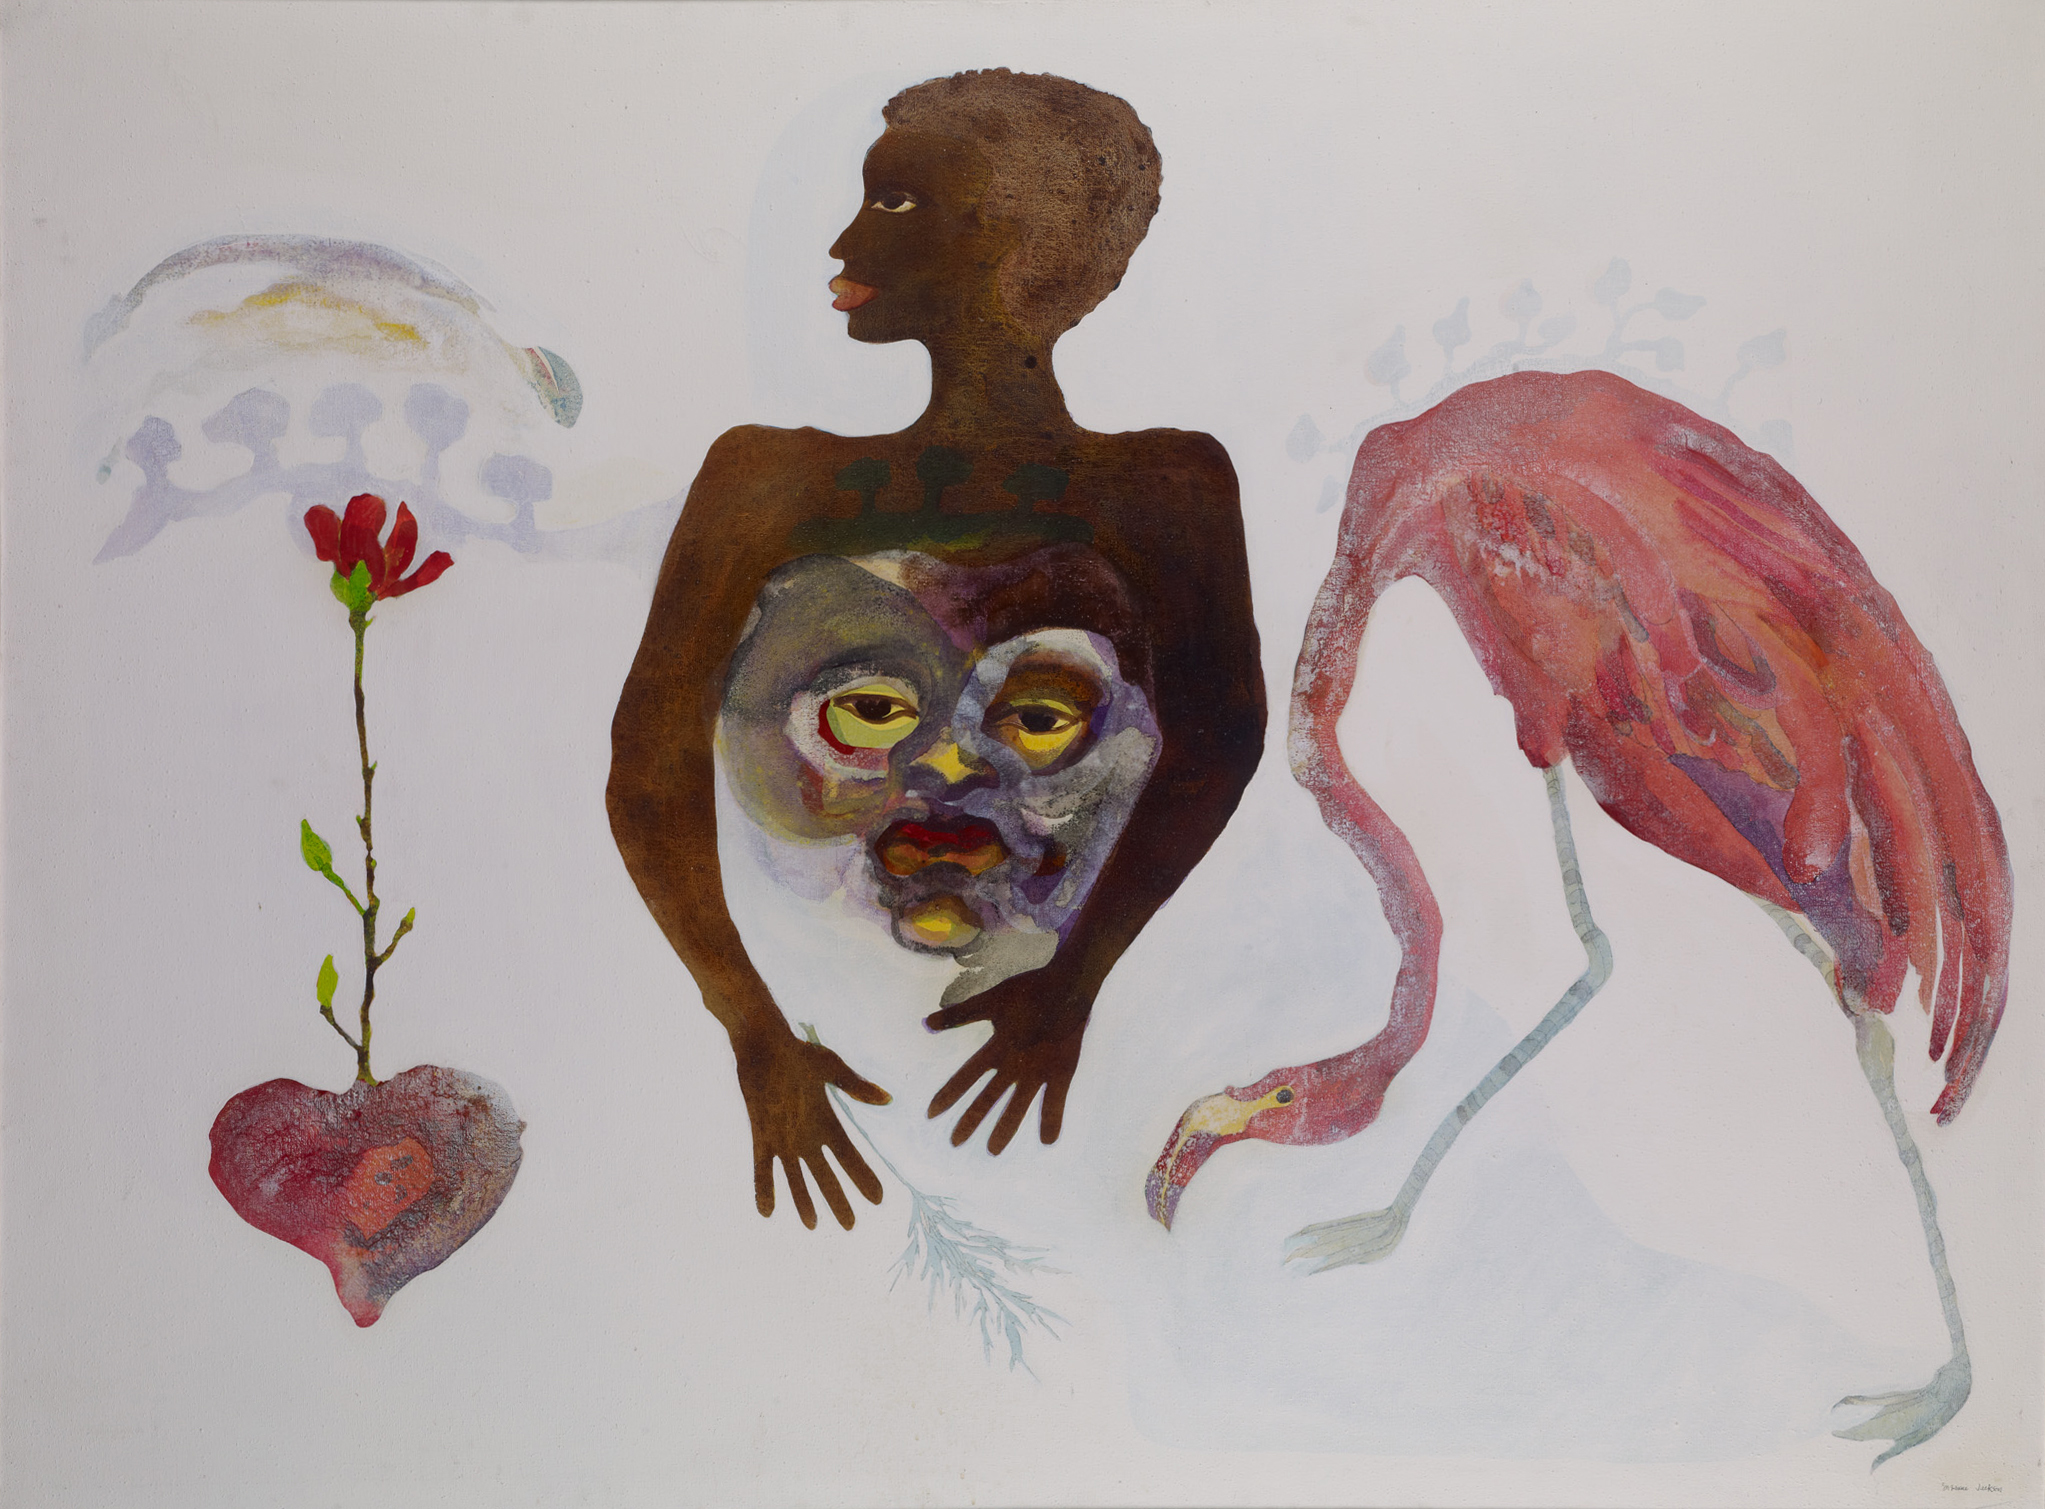 Apparitional Visitations, by Suzanne Jackson, 1973